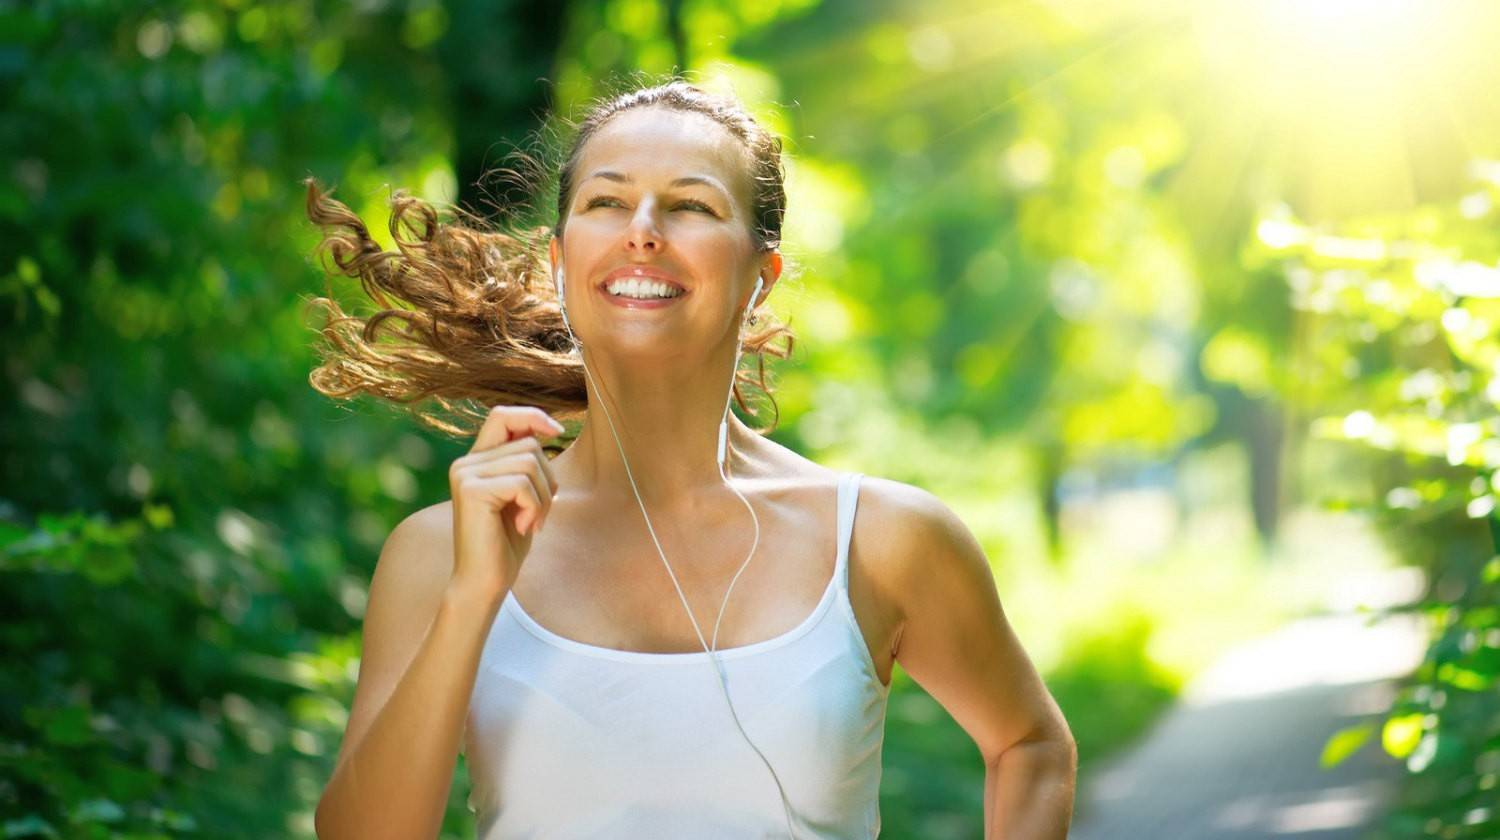 Female Runner Jogging during Outdoor Workout in a Park   Can't Lose Weight? Try These Best Ways to Lose Weight, Tone, and Slim Down Naturally   Featured